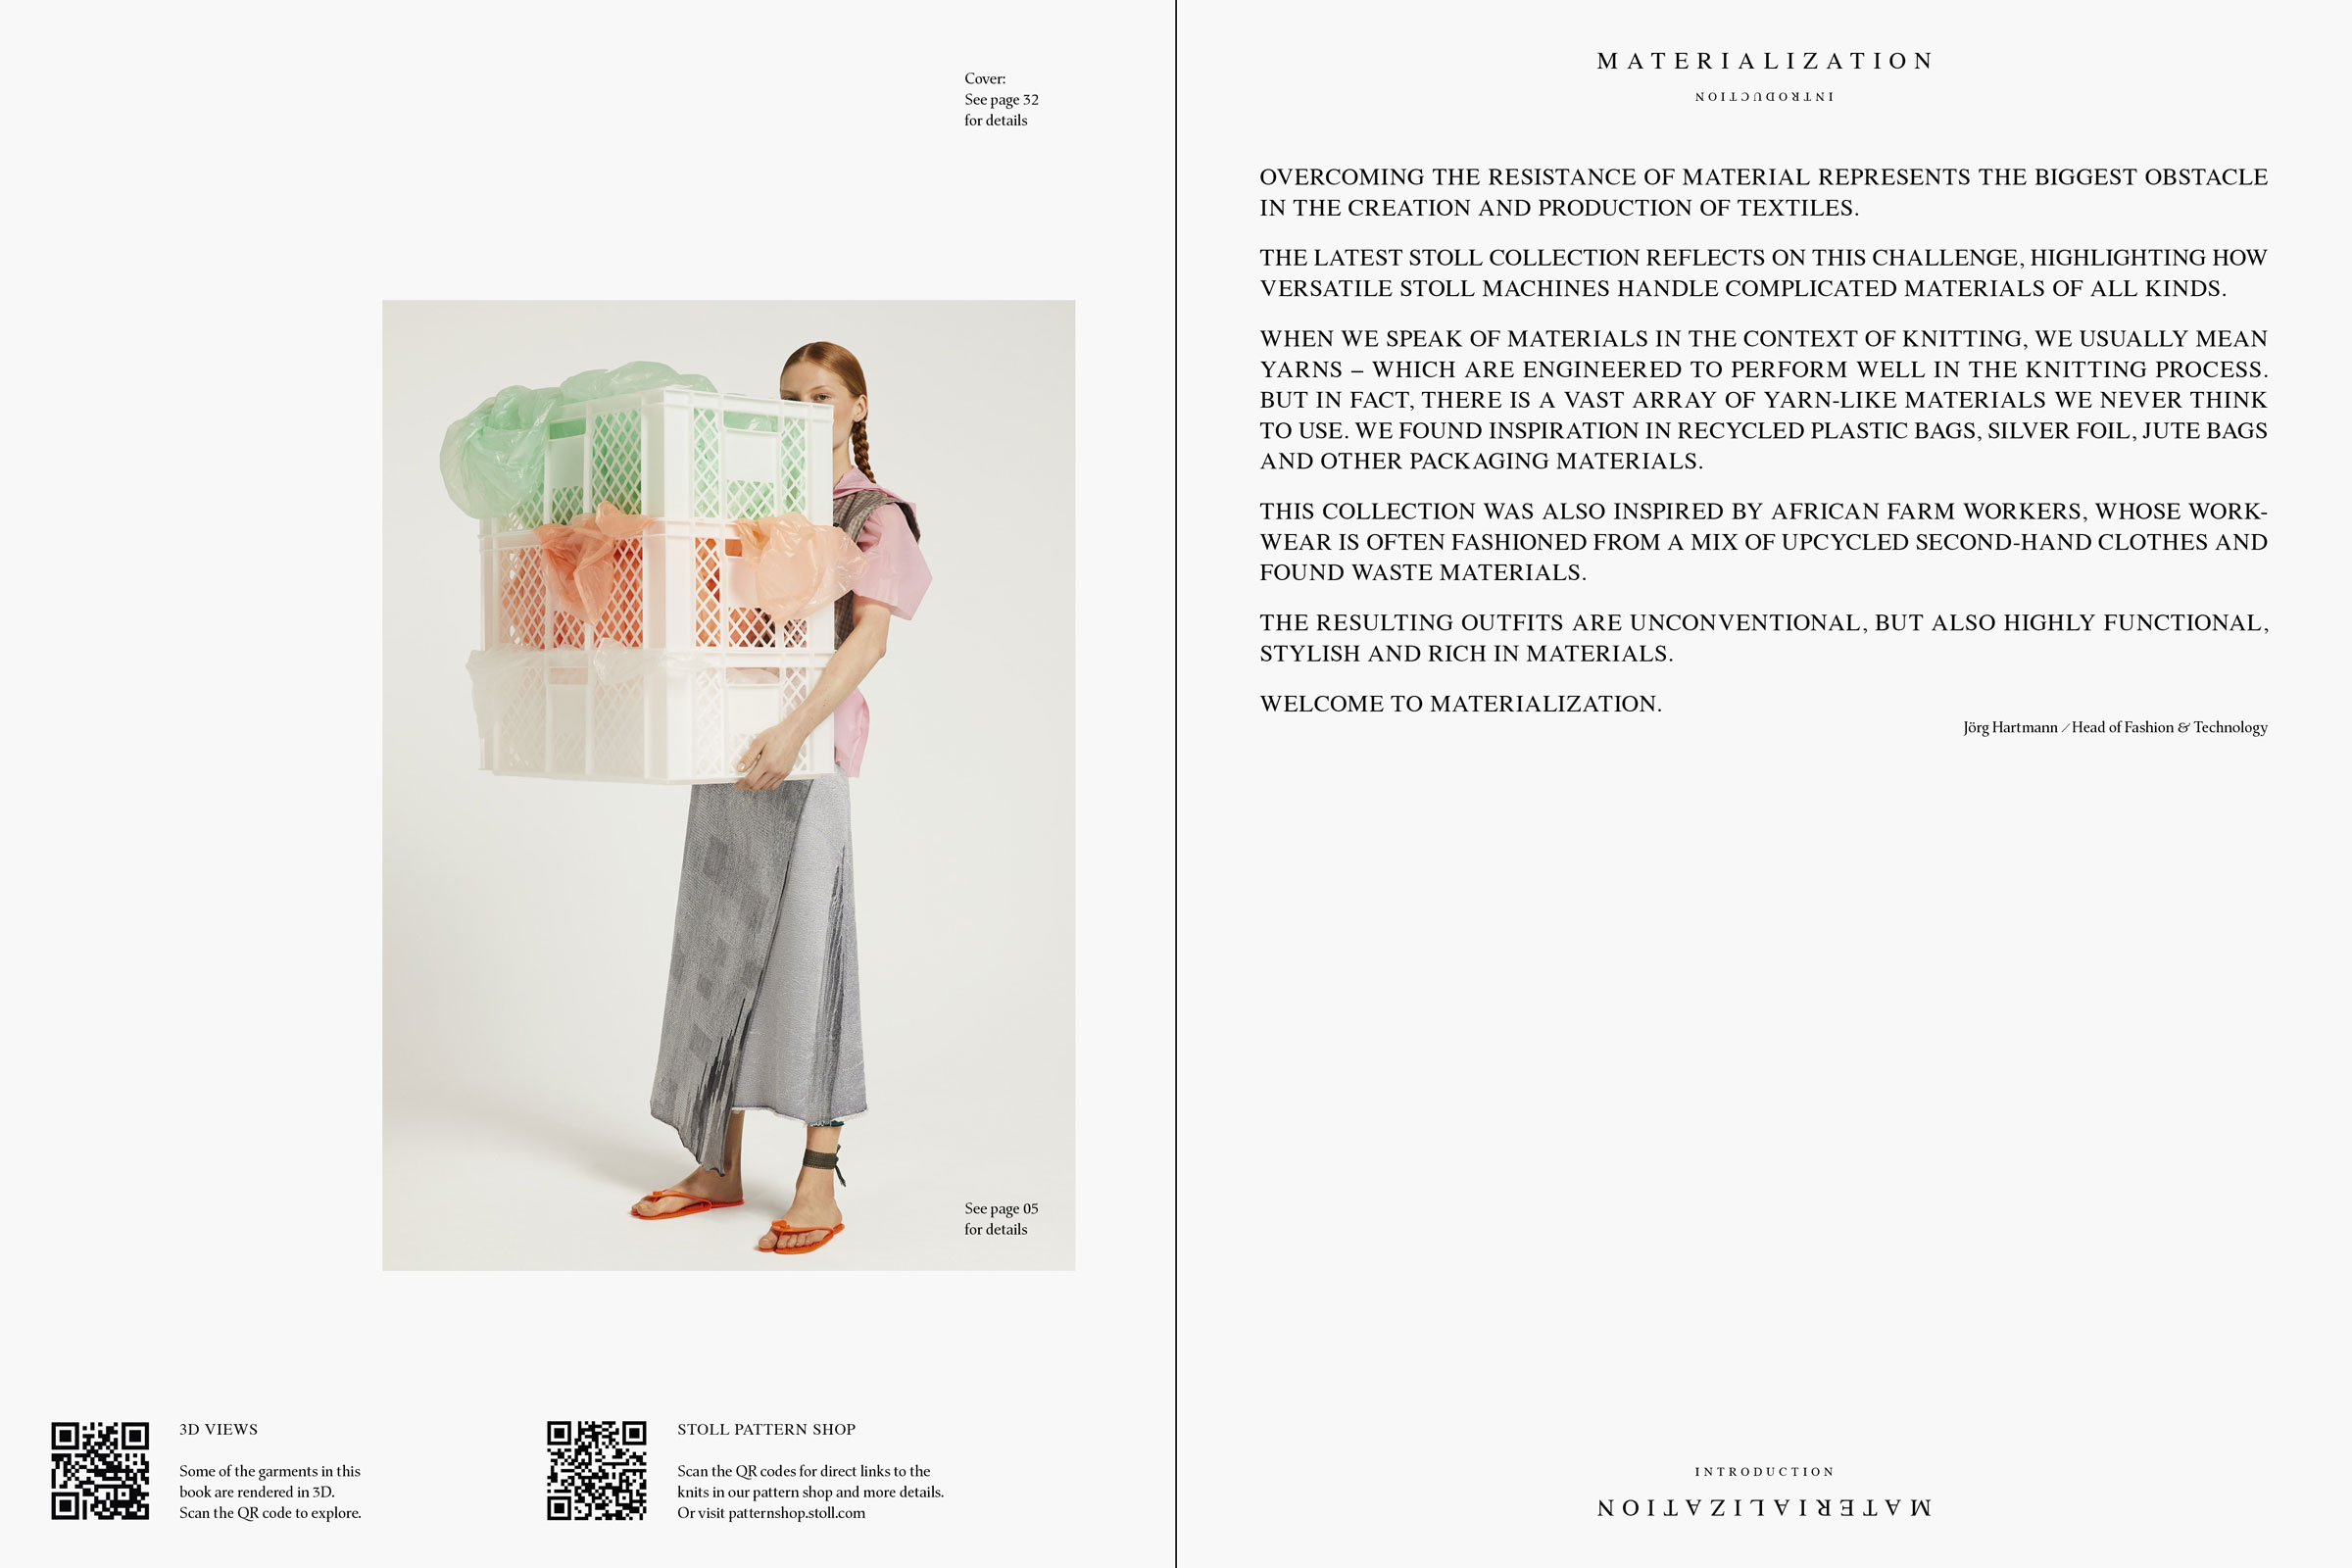 OLIVER MOORE Art Direction and Graphic Design  Torstrasse 98 10119 Berlin  studio@olivermoore.de +49 177 7466676 STOLL Materialization